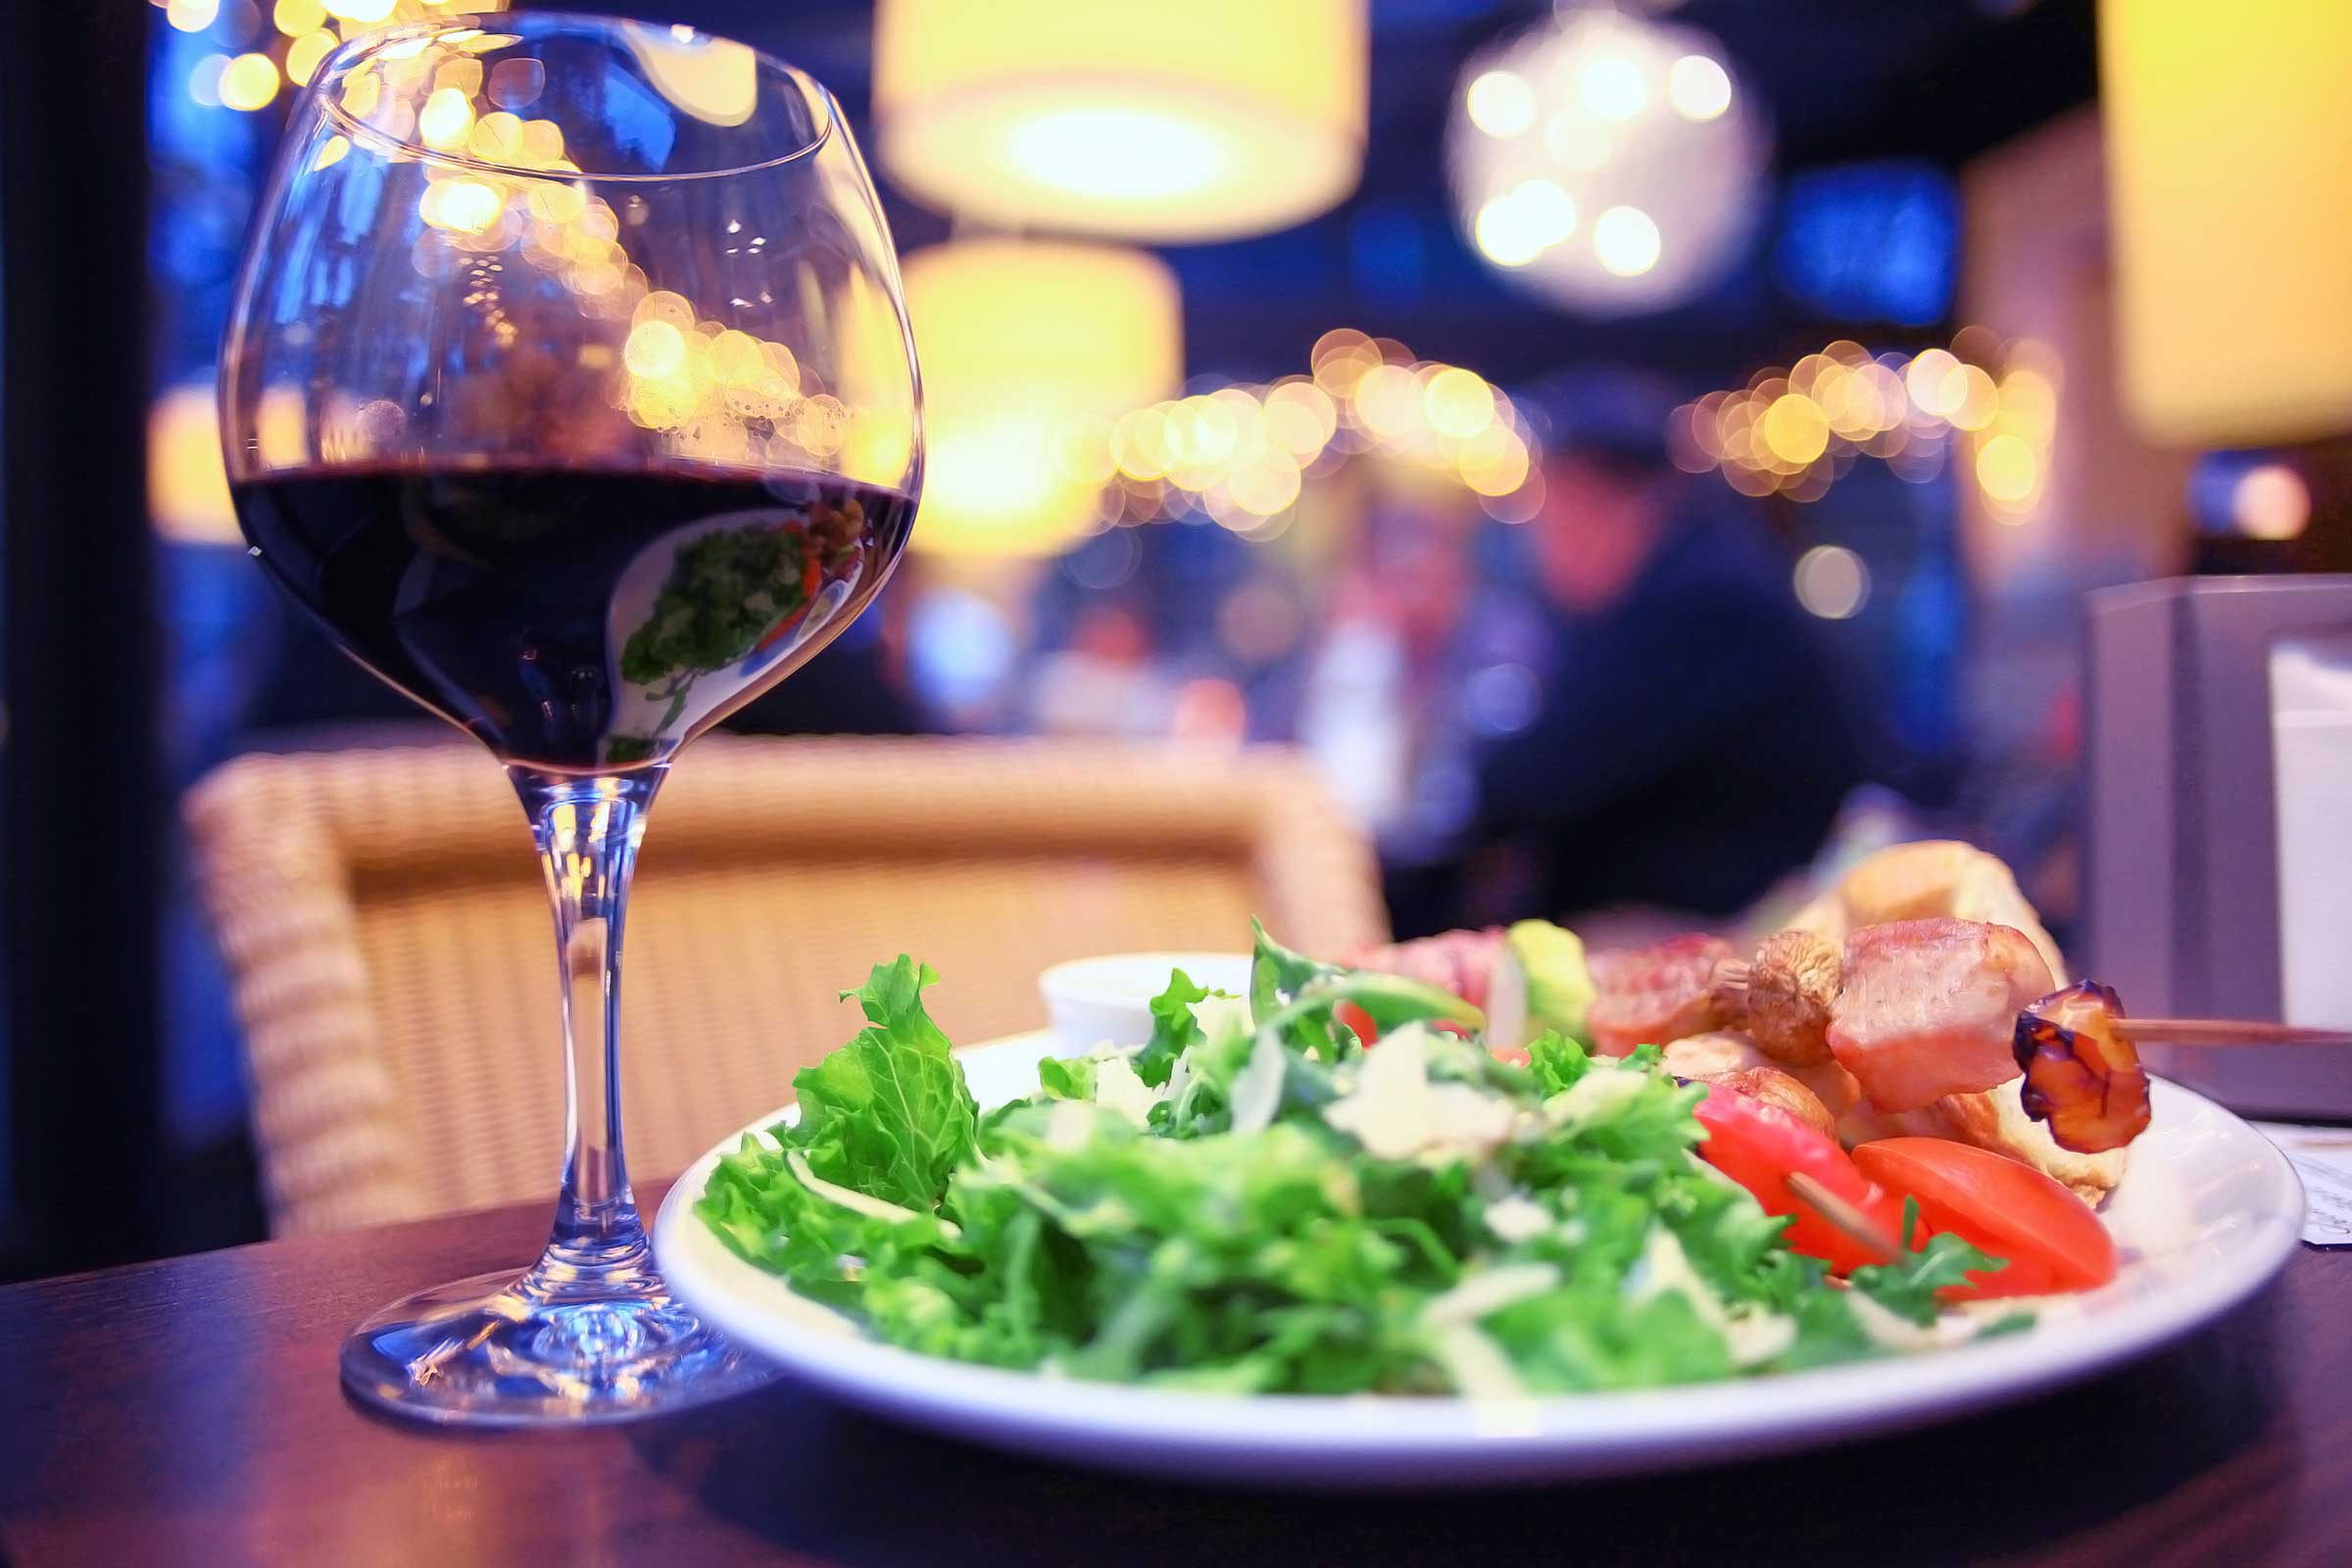 Healthy Meals Do Go With Wine